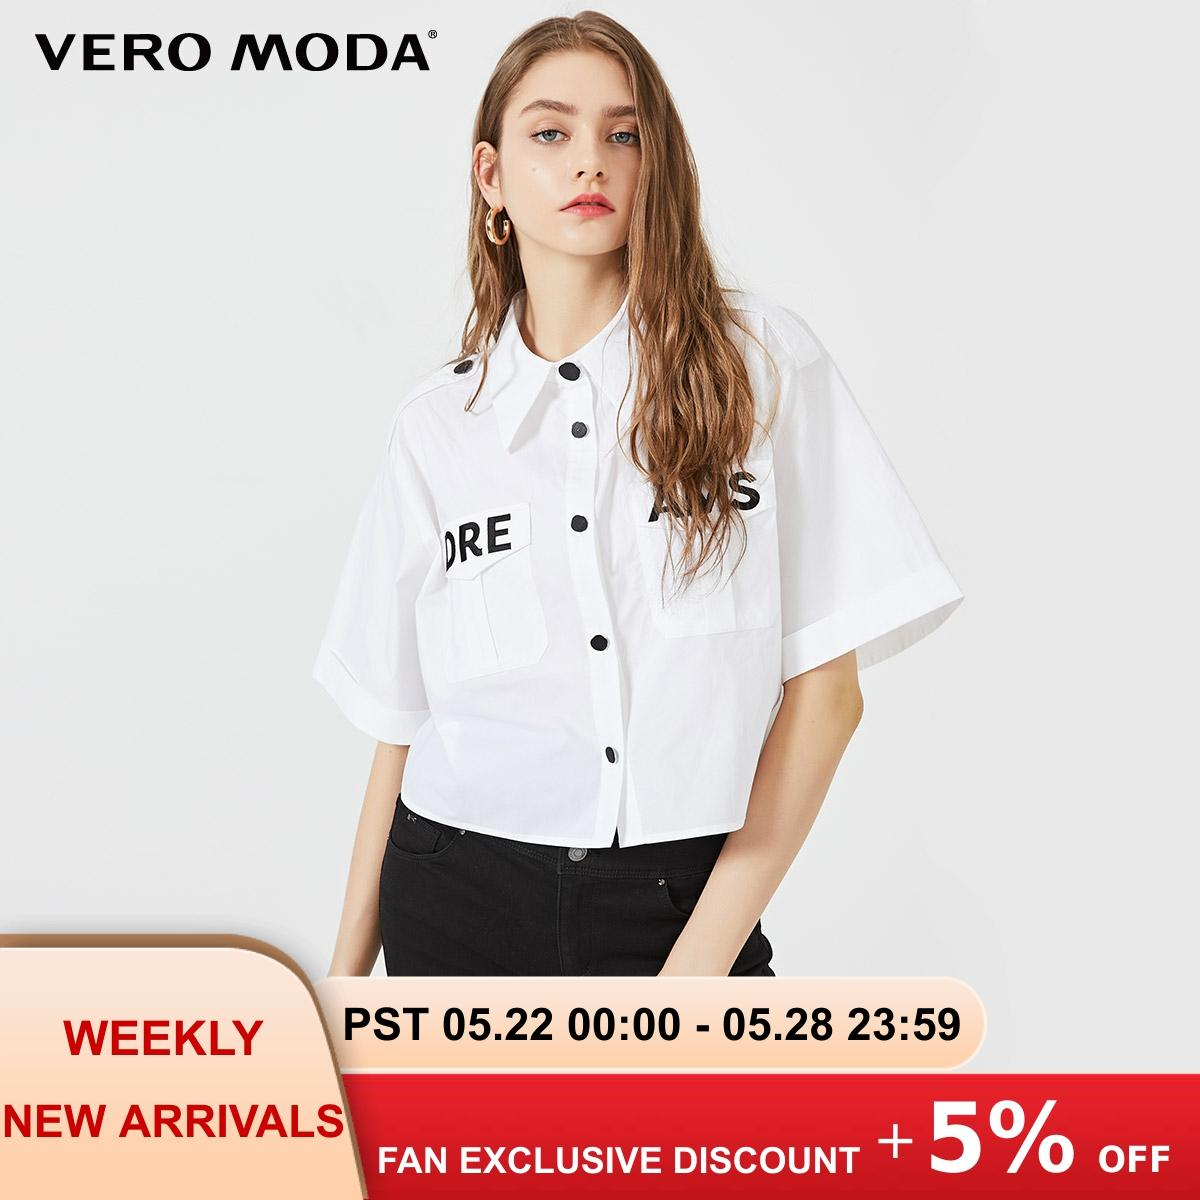 Vero Moda Women's 100% Cotton Loose Fit Embroidered Letters Short-sleeved Shirt | 31926W523